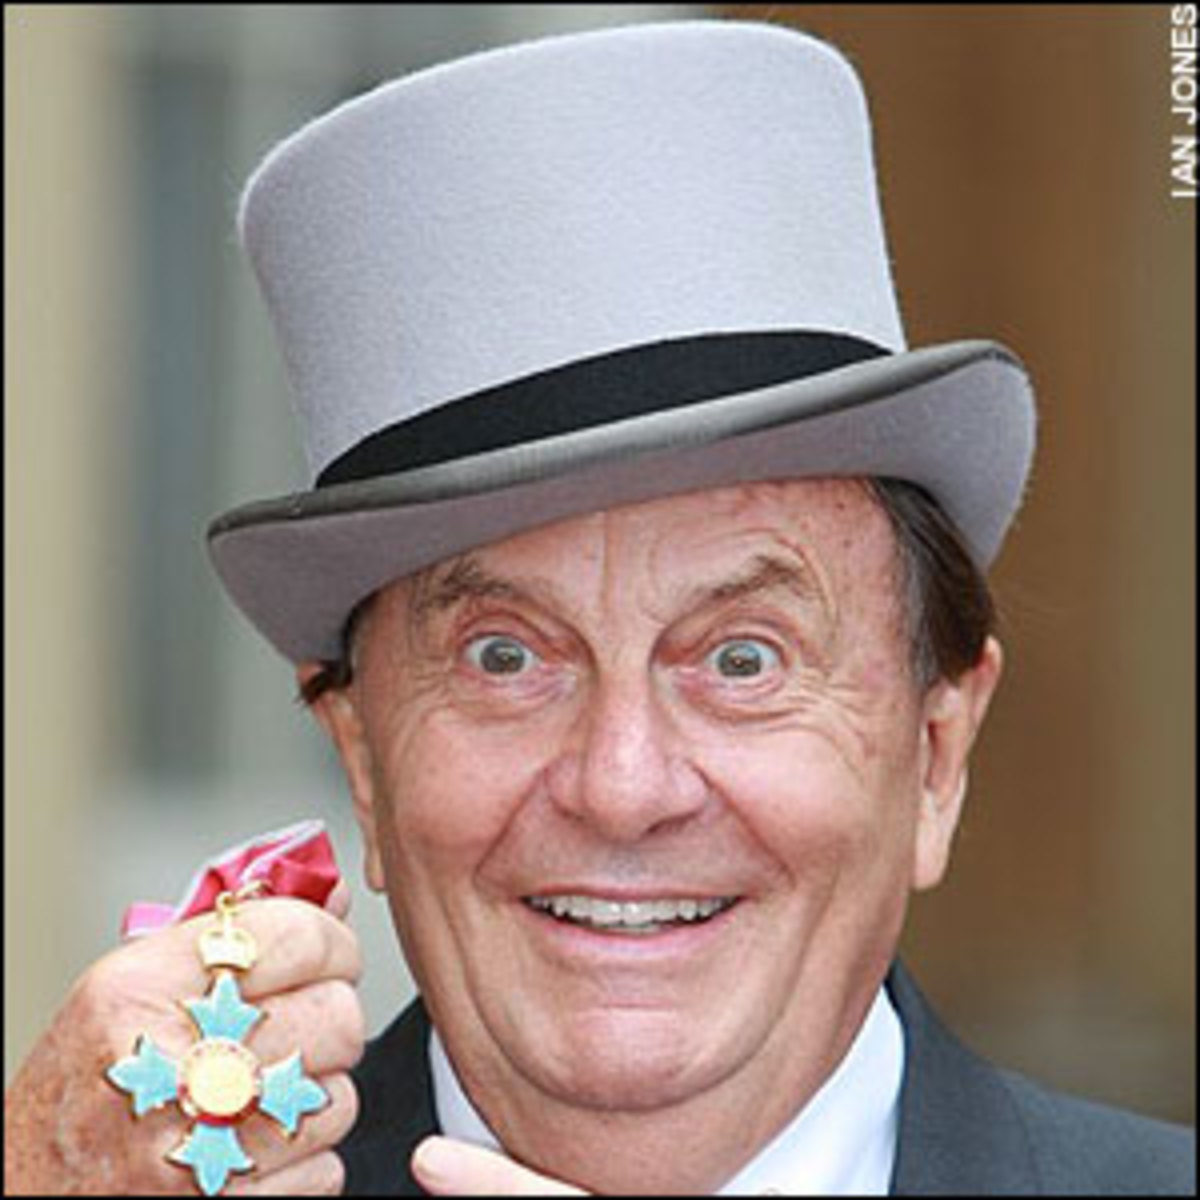 Dame Edna's alter-ego Barry Humphries, looking strangely like the Mad Hatter